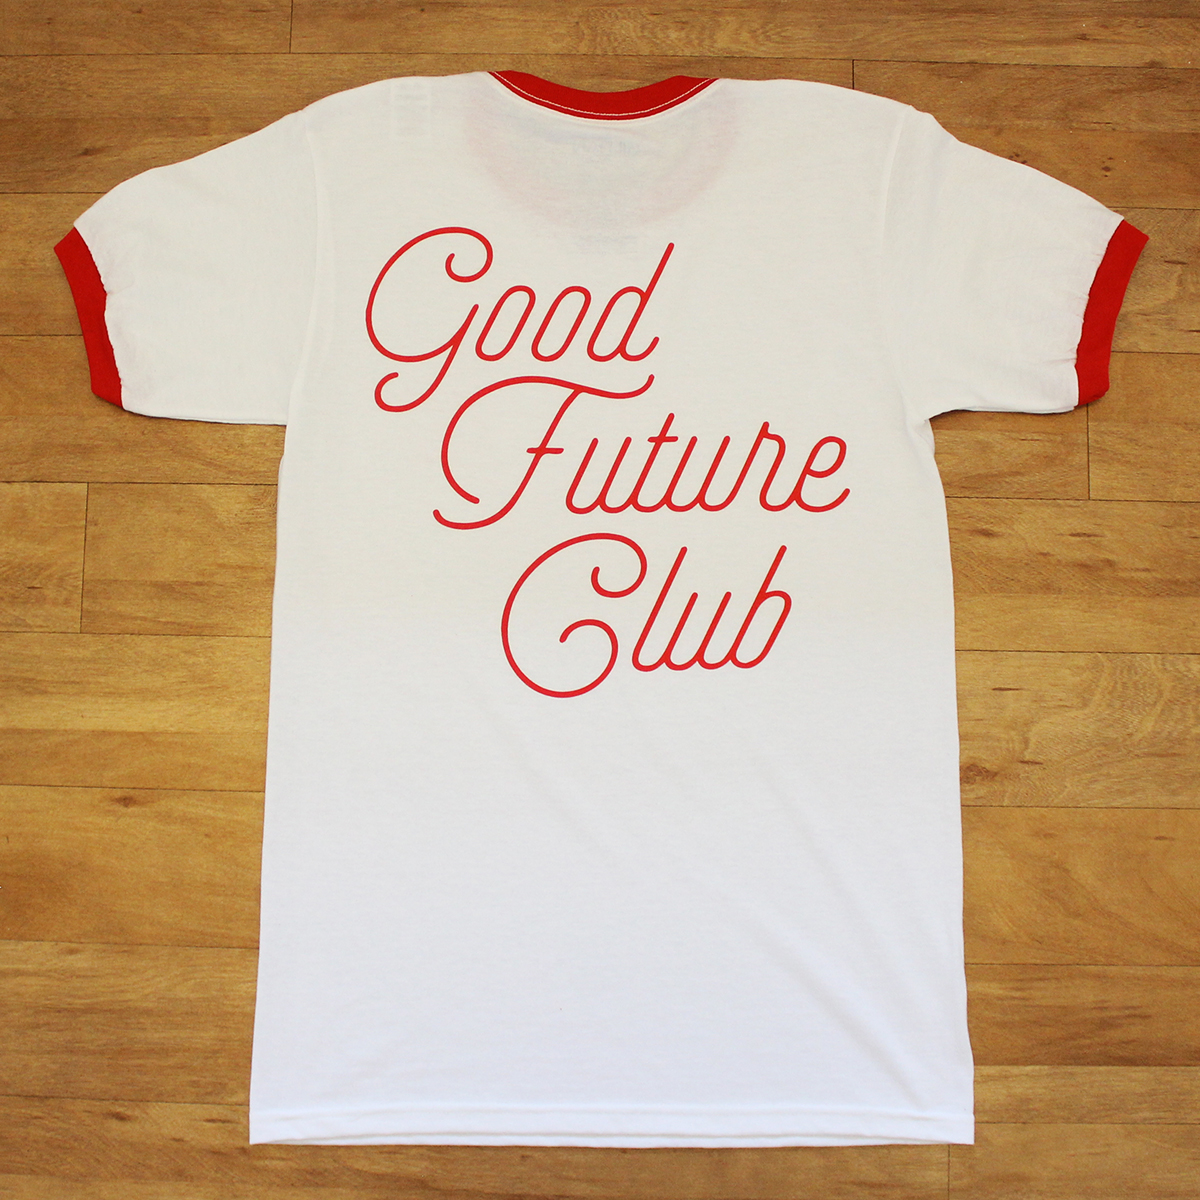 10. Stacked Script Logo Tee - Brand: Good Future ClubPrice: $19.99